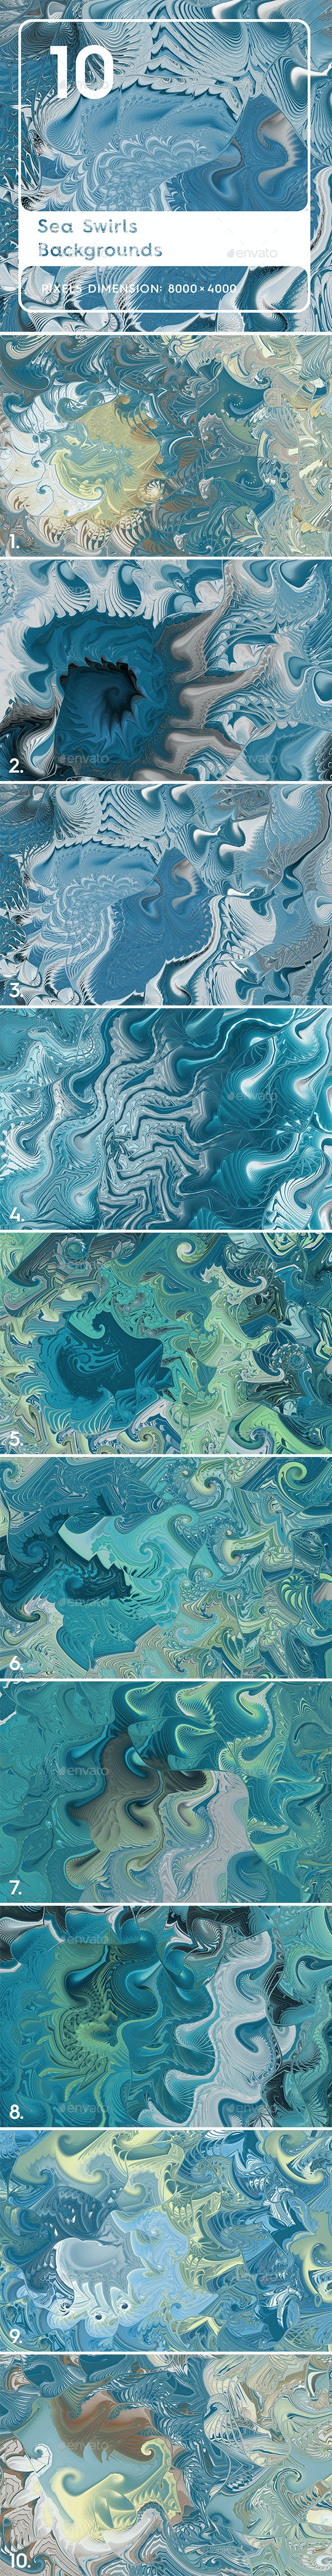 10 Sea Swirls Backgrounds Textures - 3DOcean Item for Sale